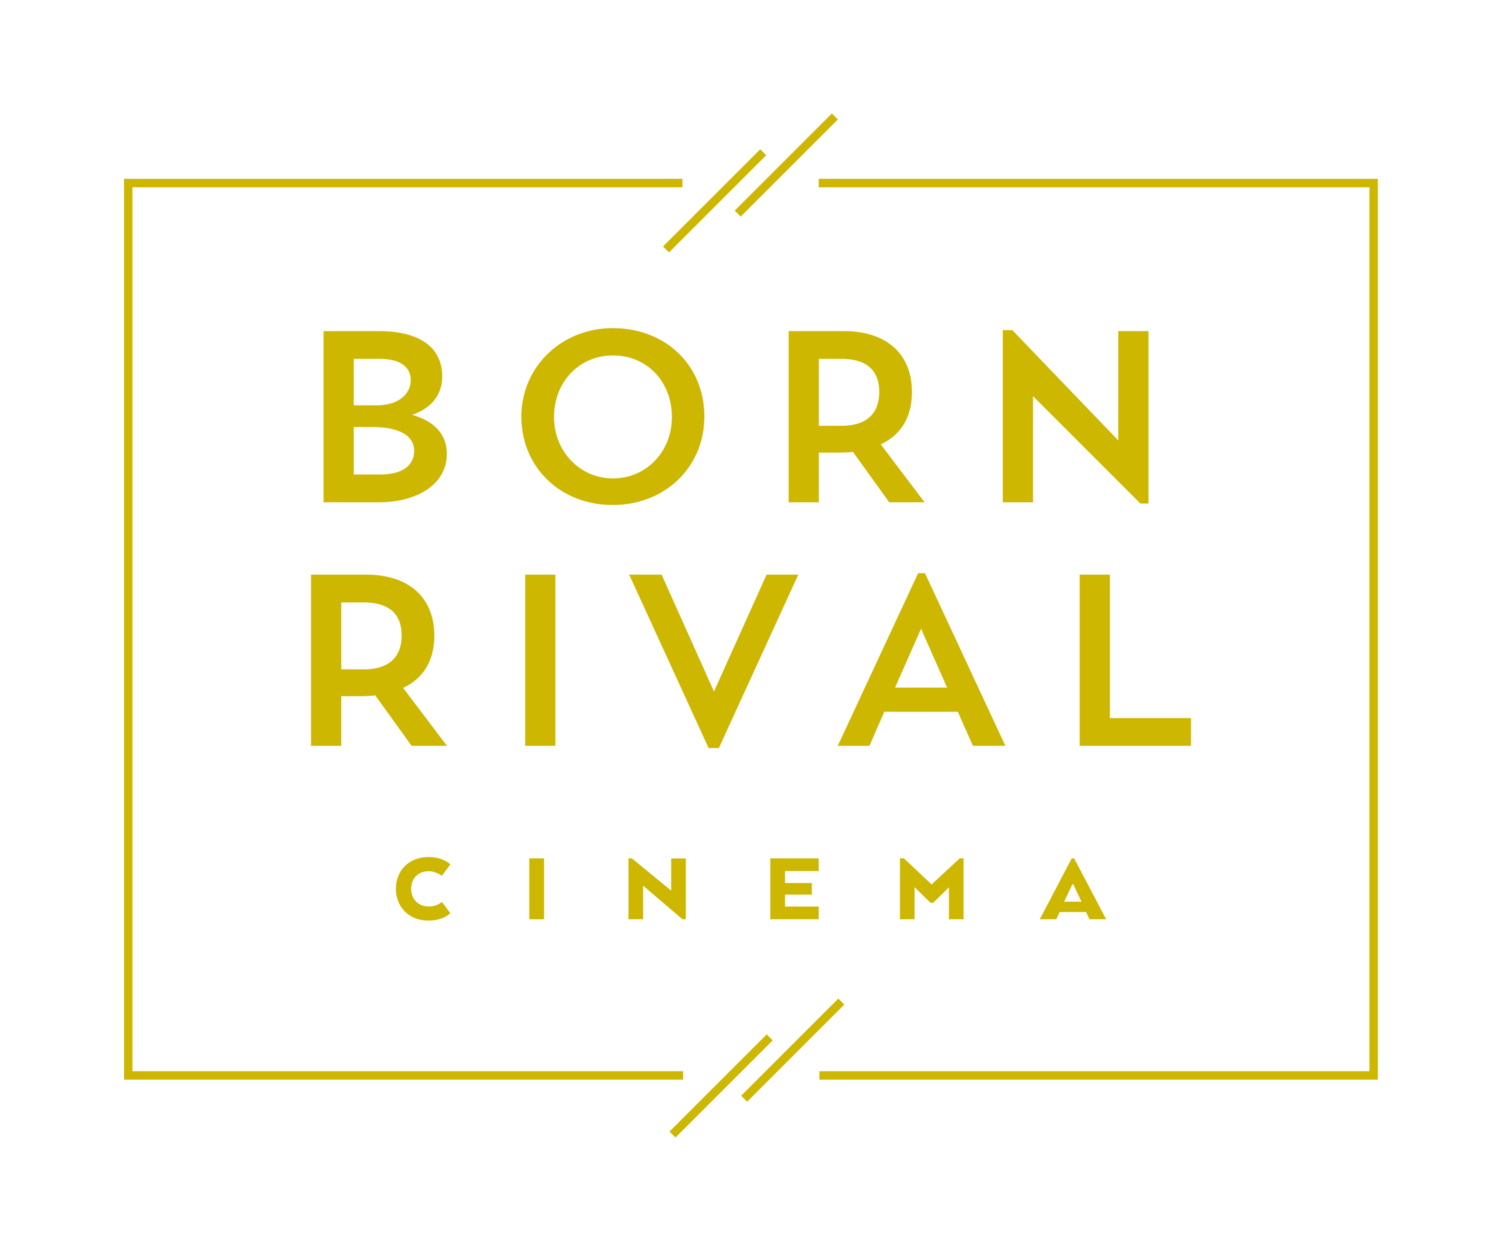 Born Rival Cinema